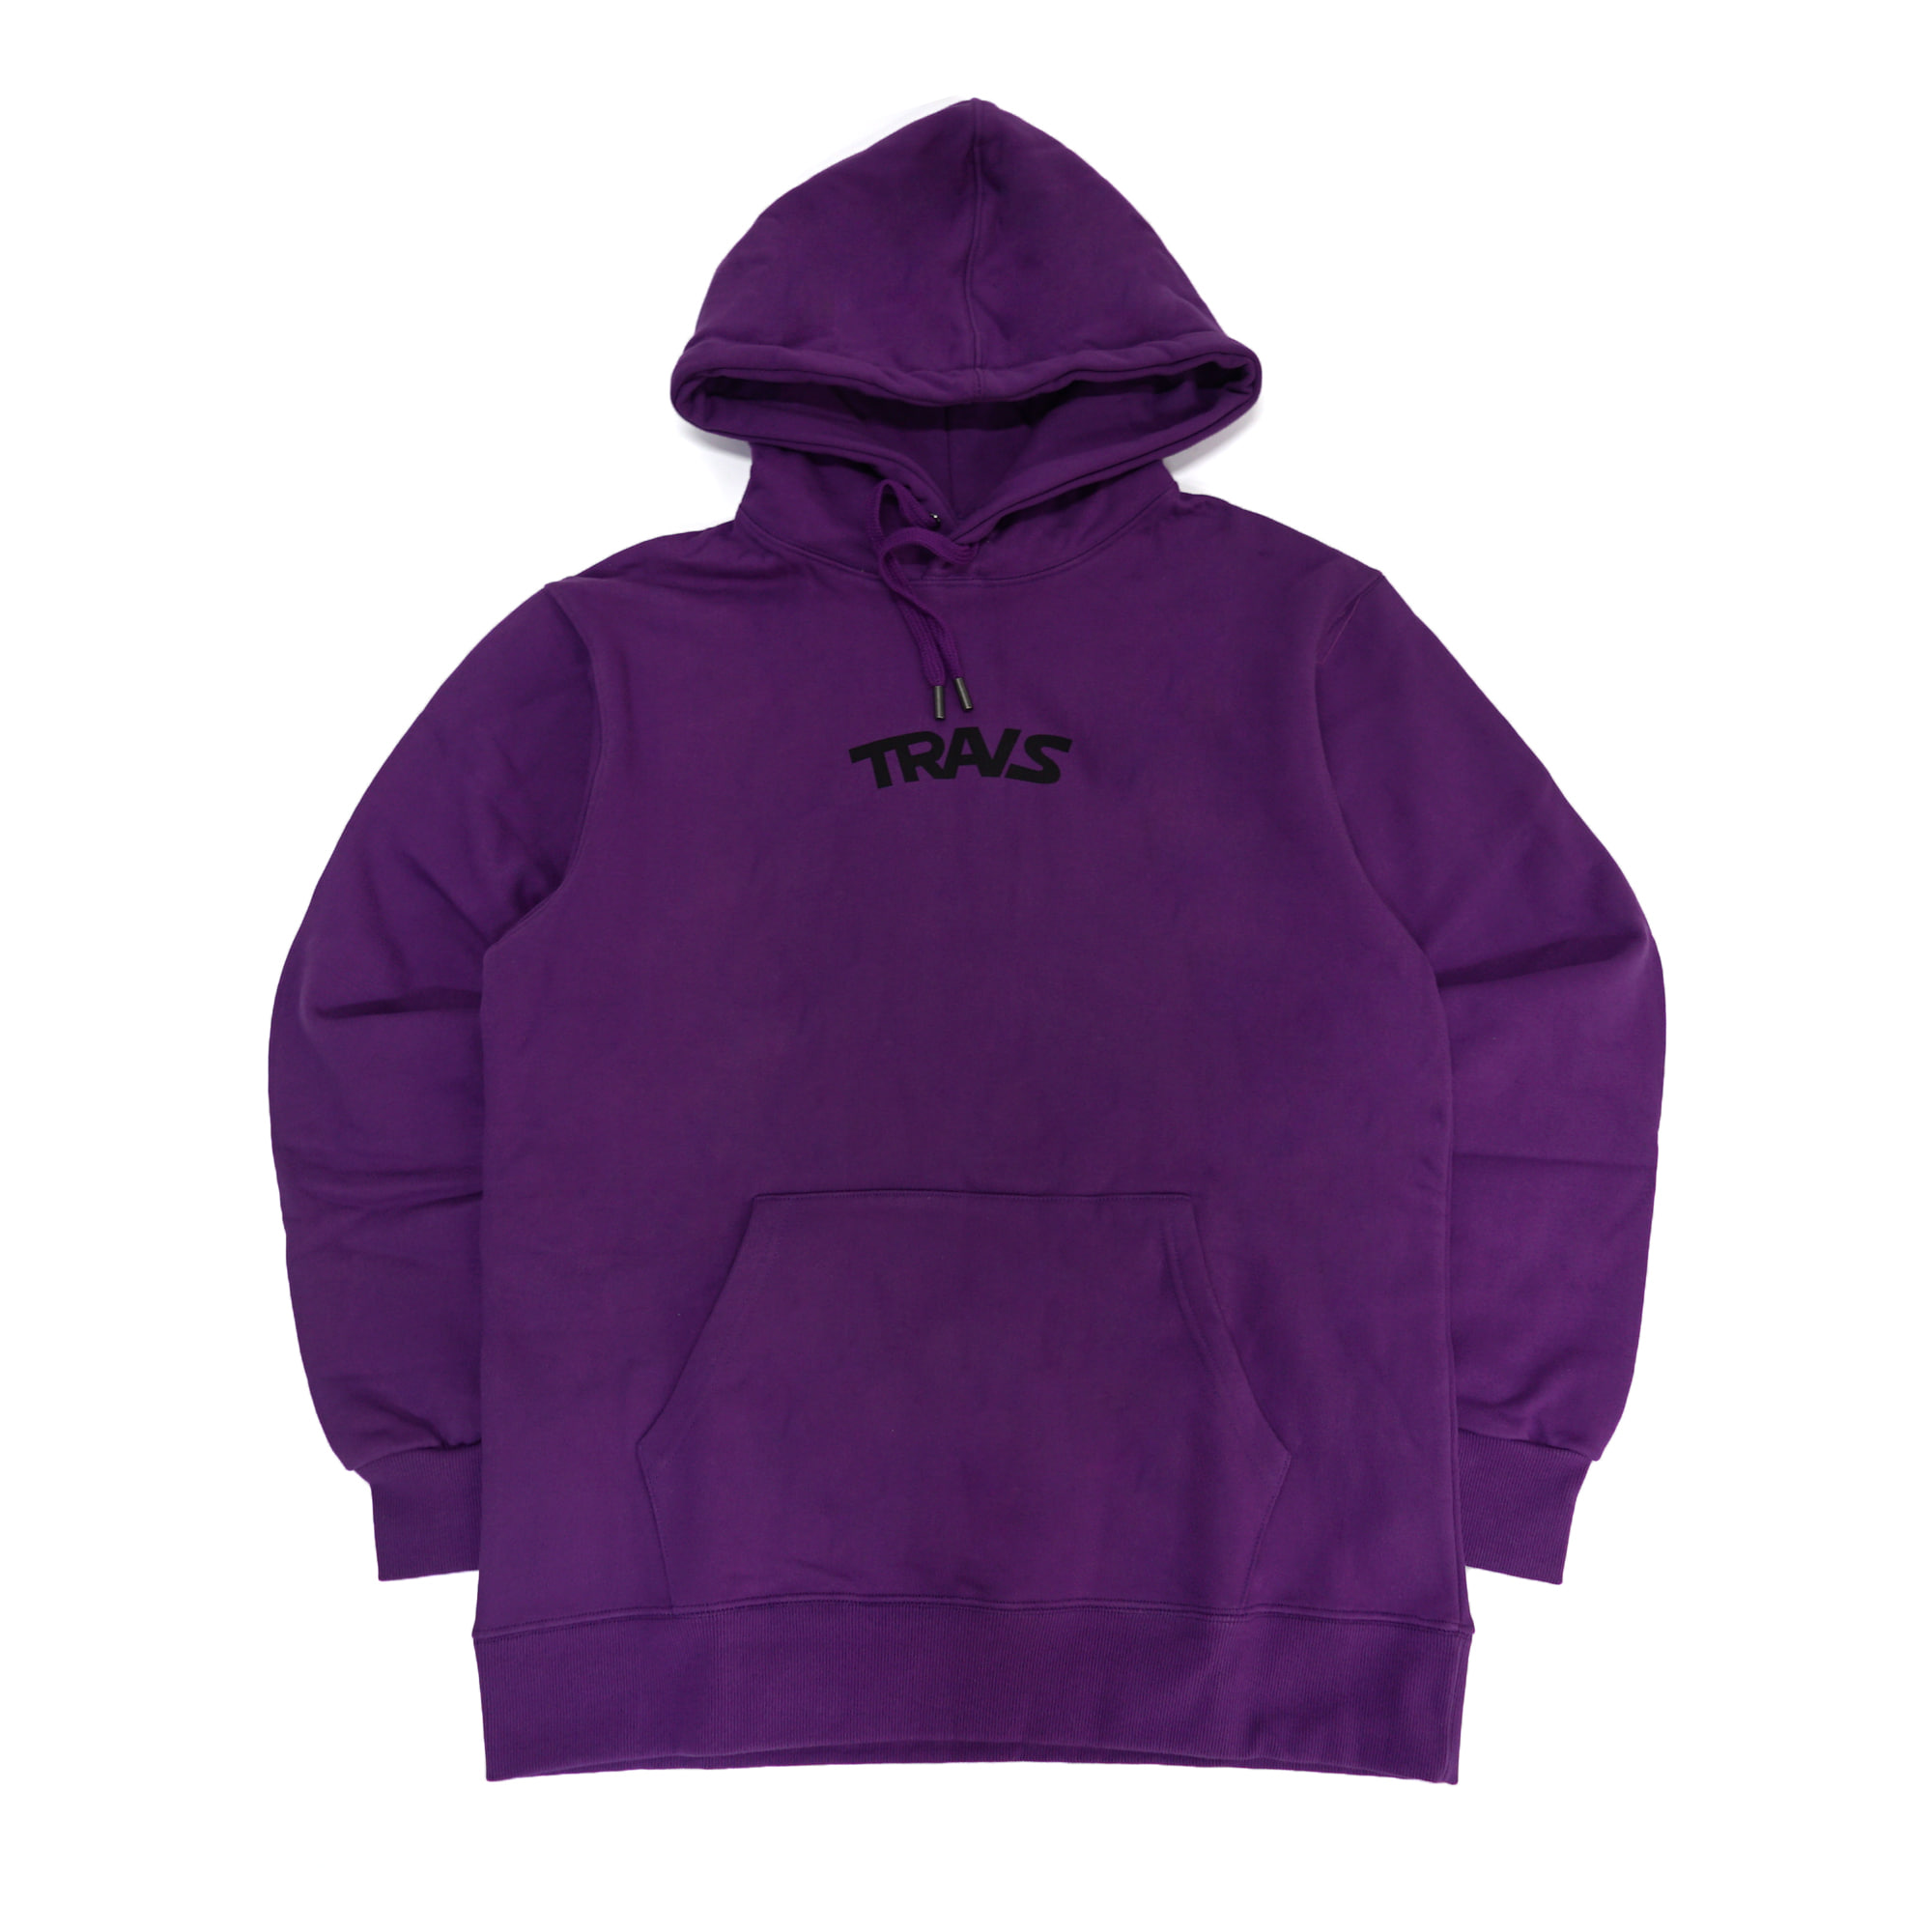 [TRAVS] TRAVS LOGO HOODIE - PURPLE/BLACK